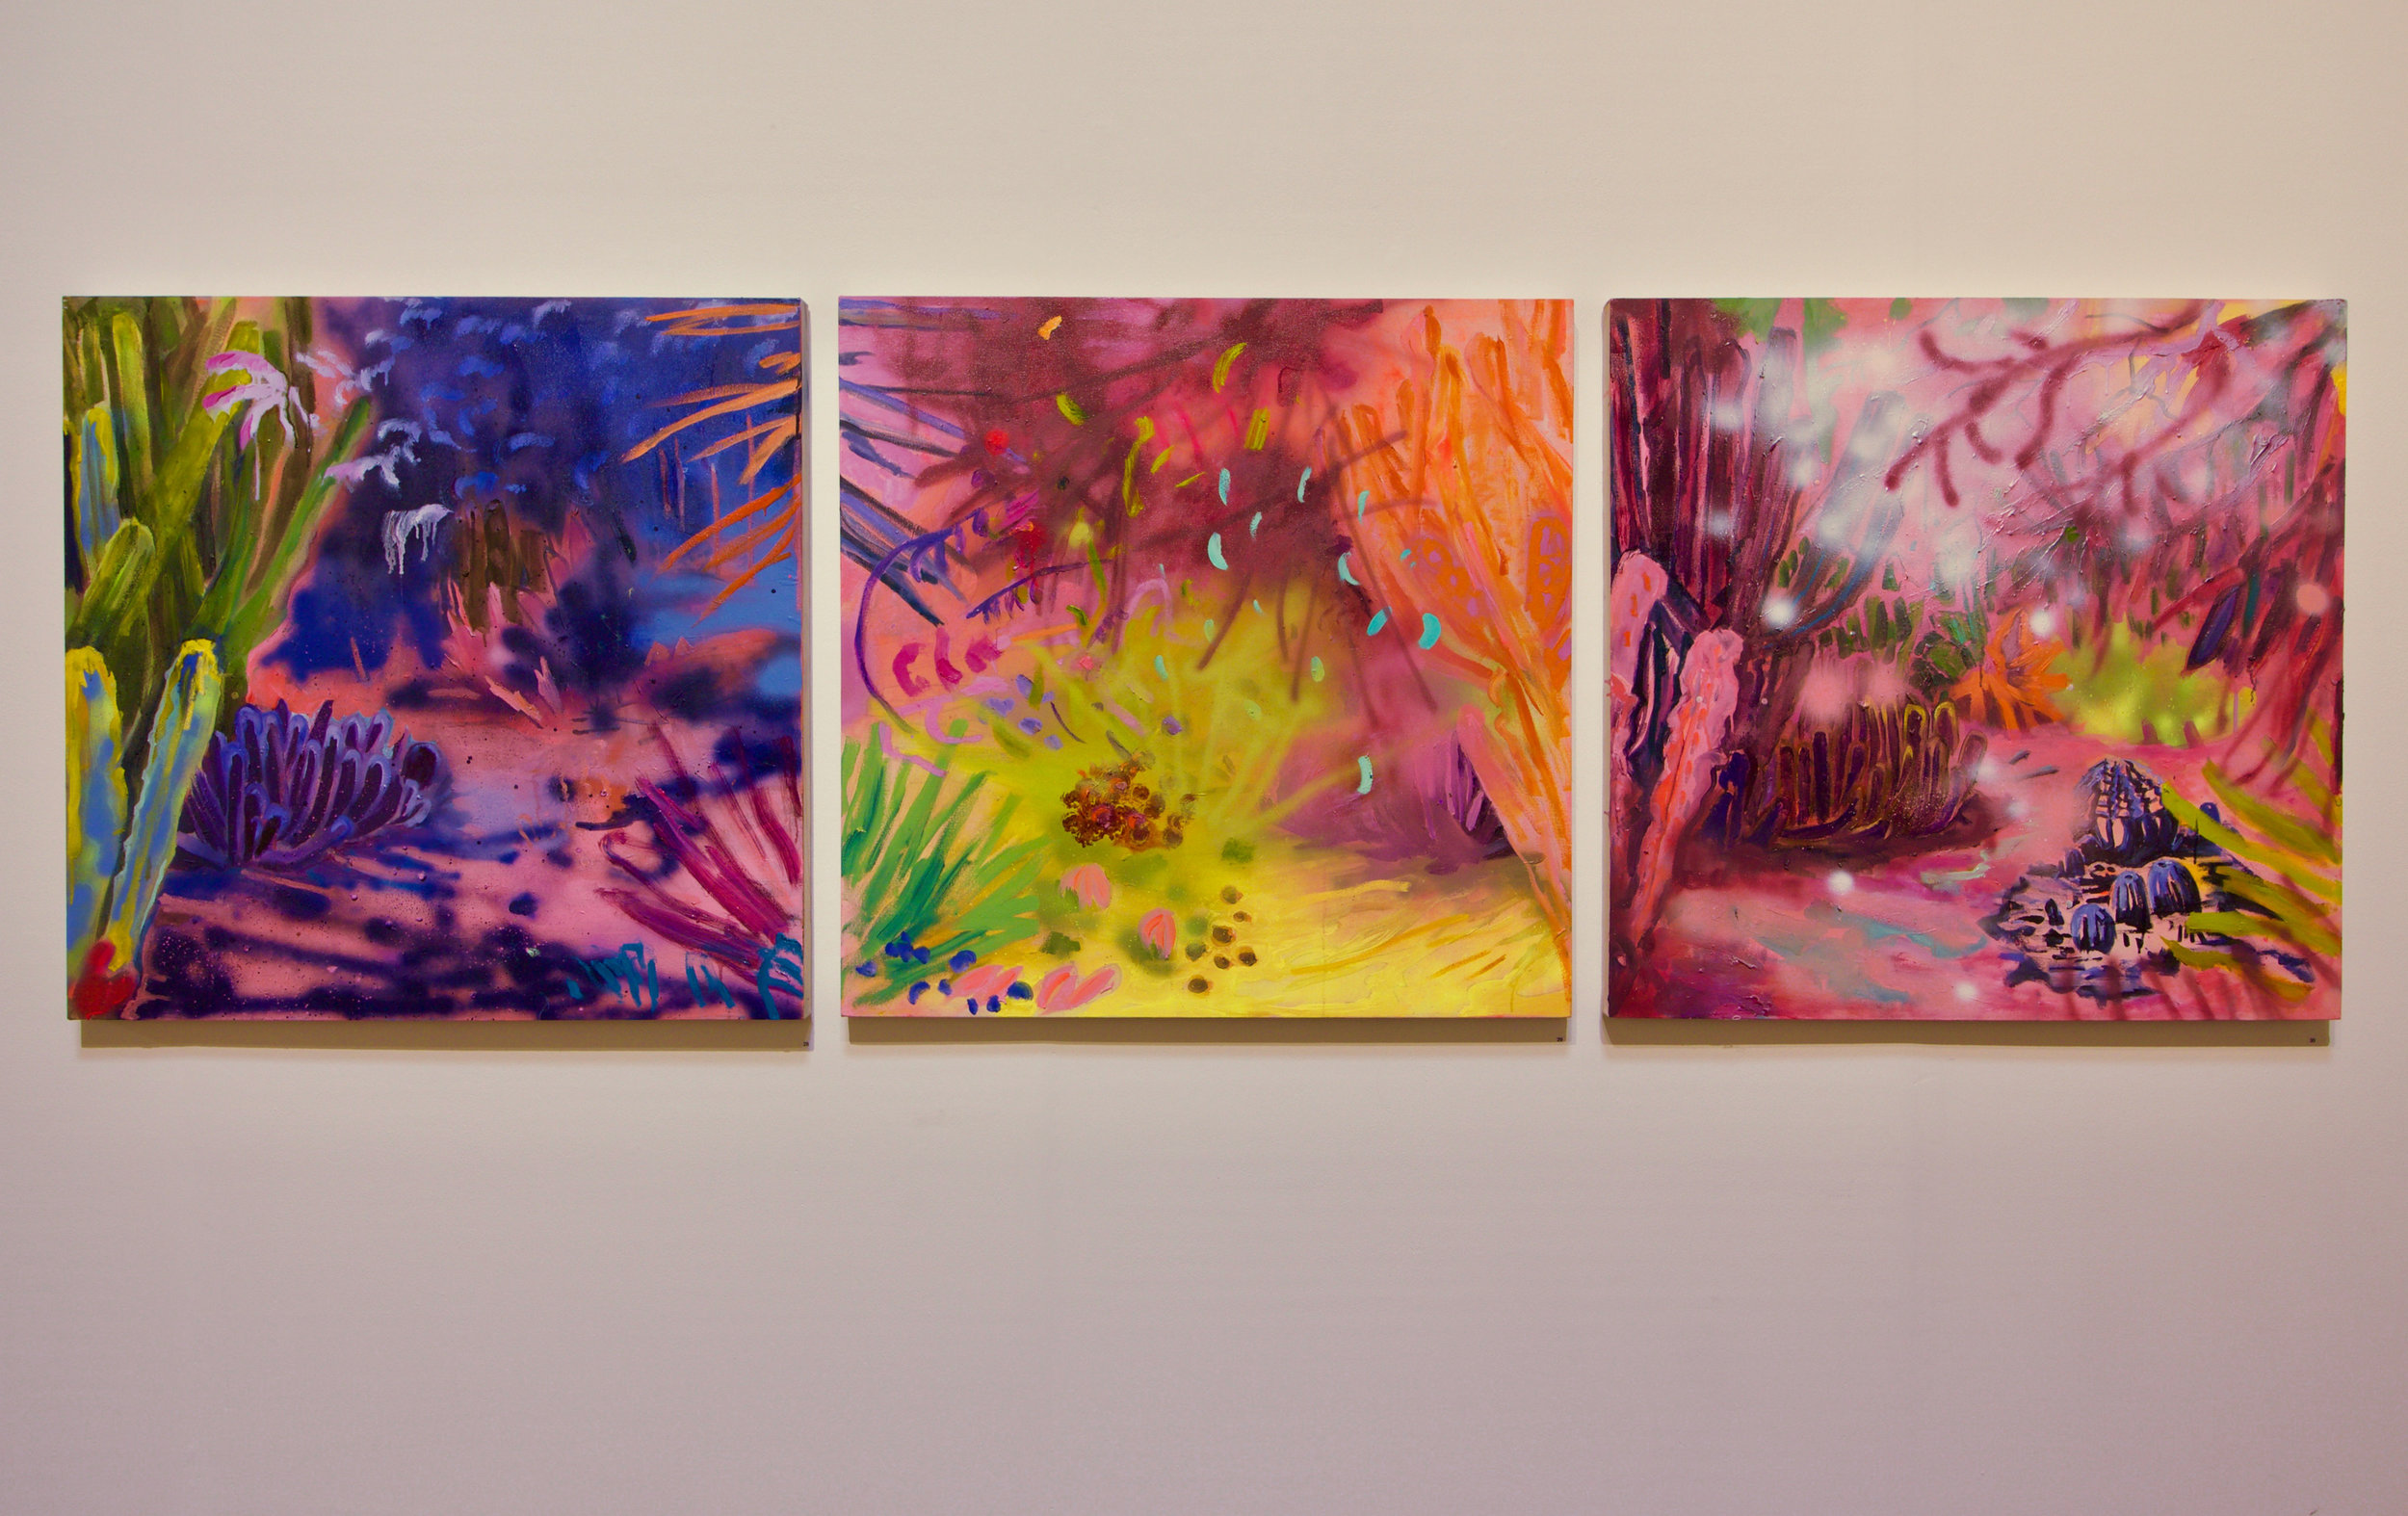 Kathryn Cowen, Multiverse 1 - 3, 2019, installation view